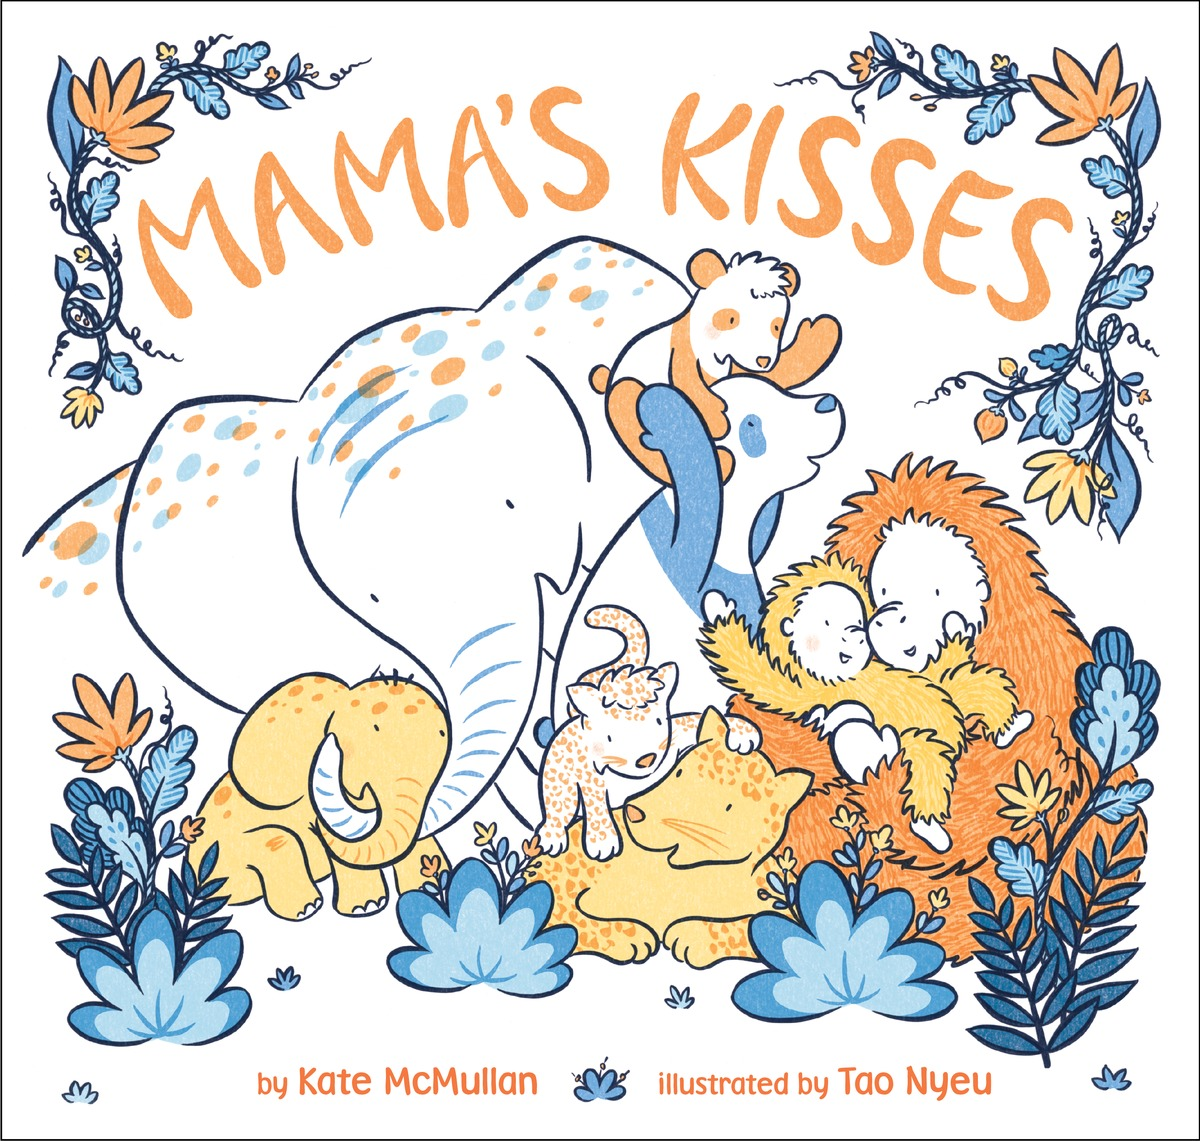 Sunday Story Time with Kate McMullan (Author of Mama's Kisses)